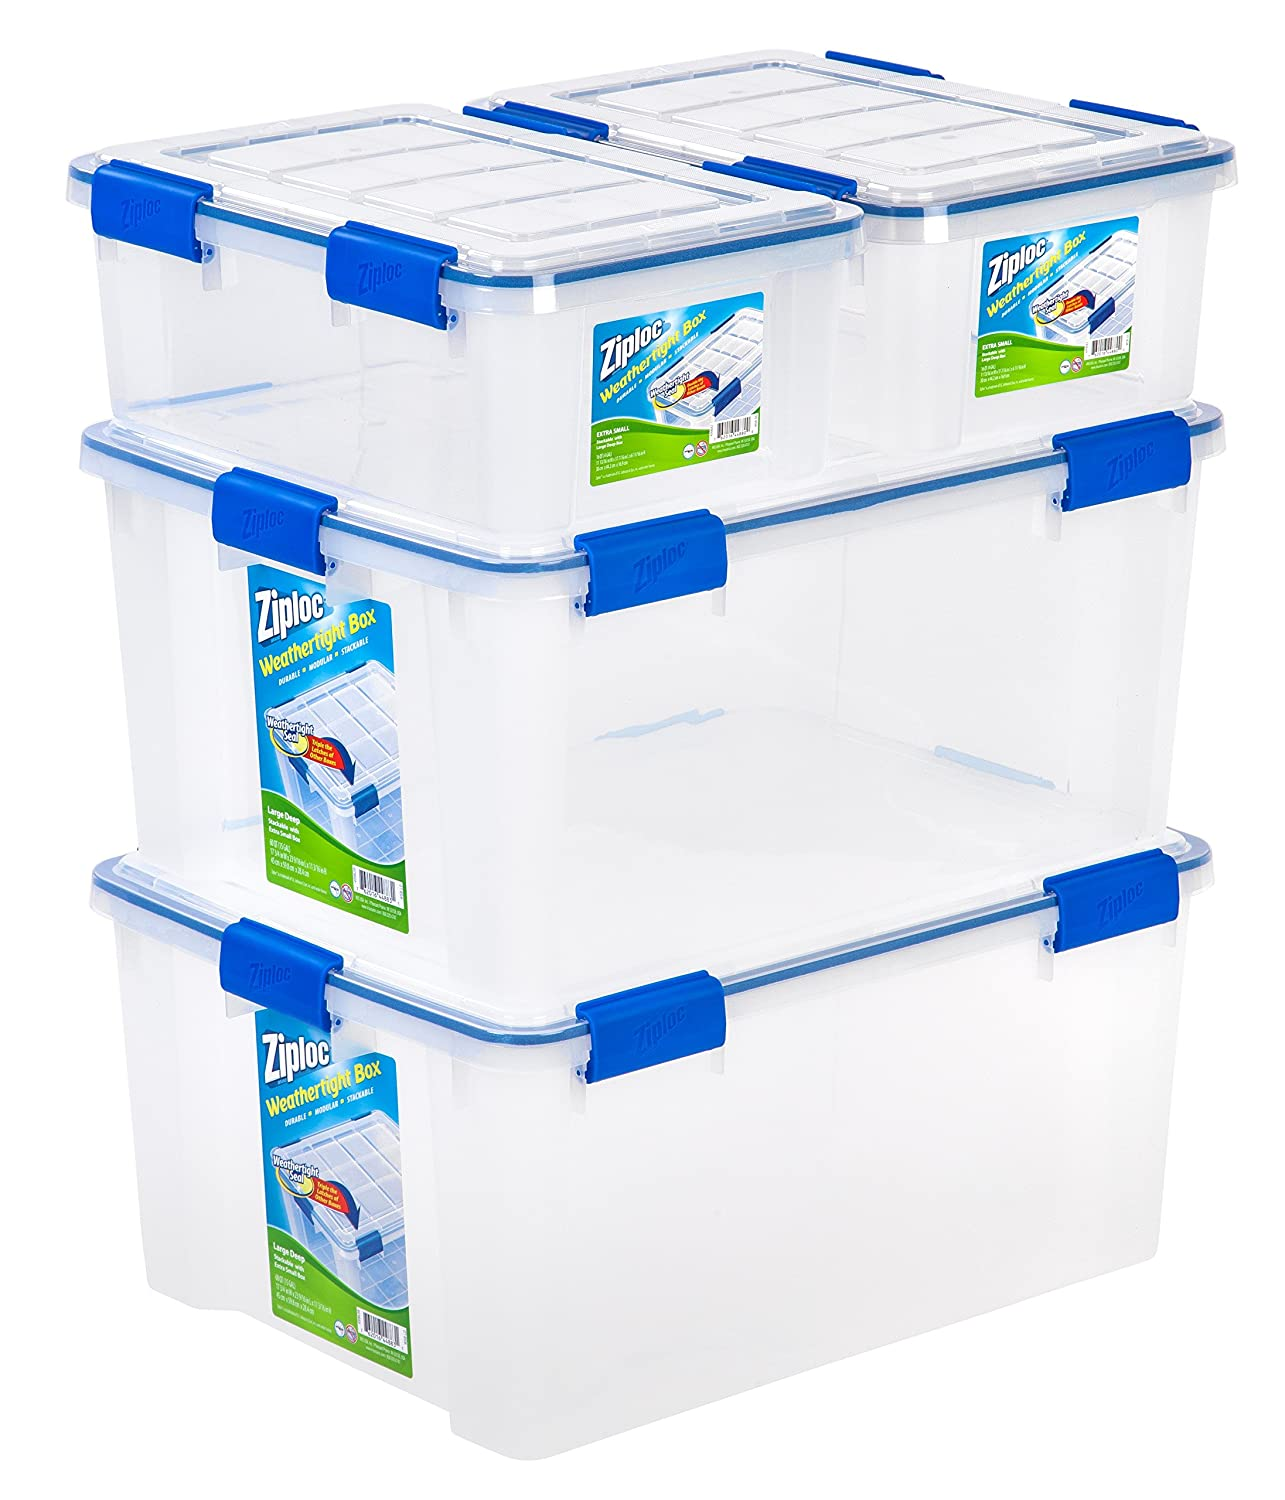 Ziploc WeatherShield Storage Box Set